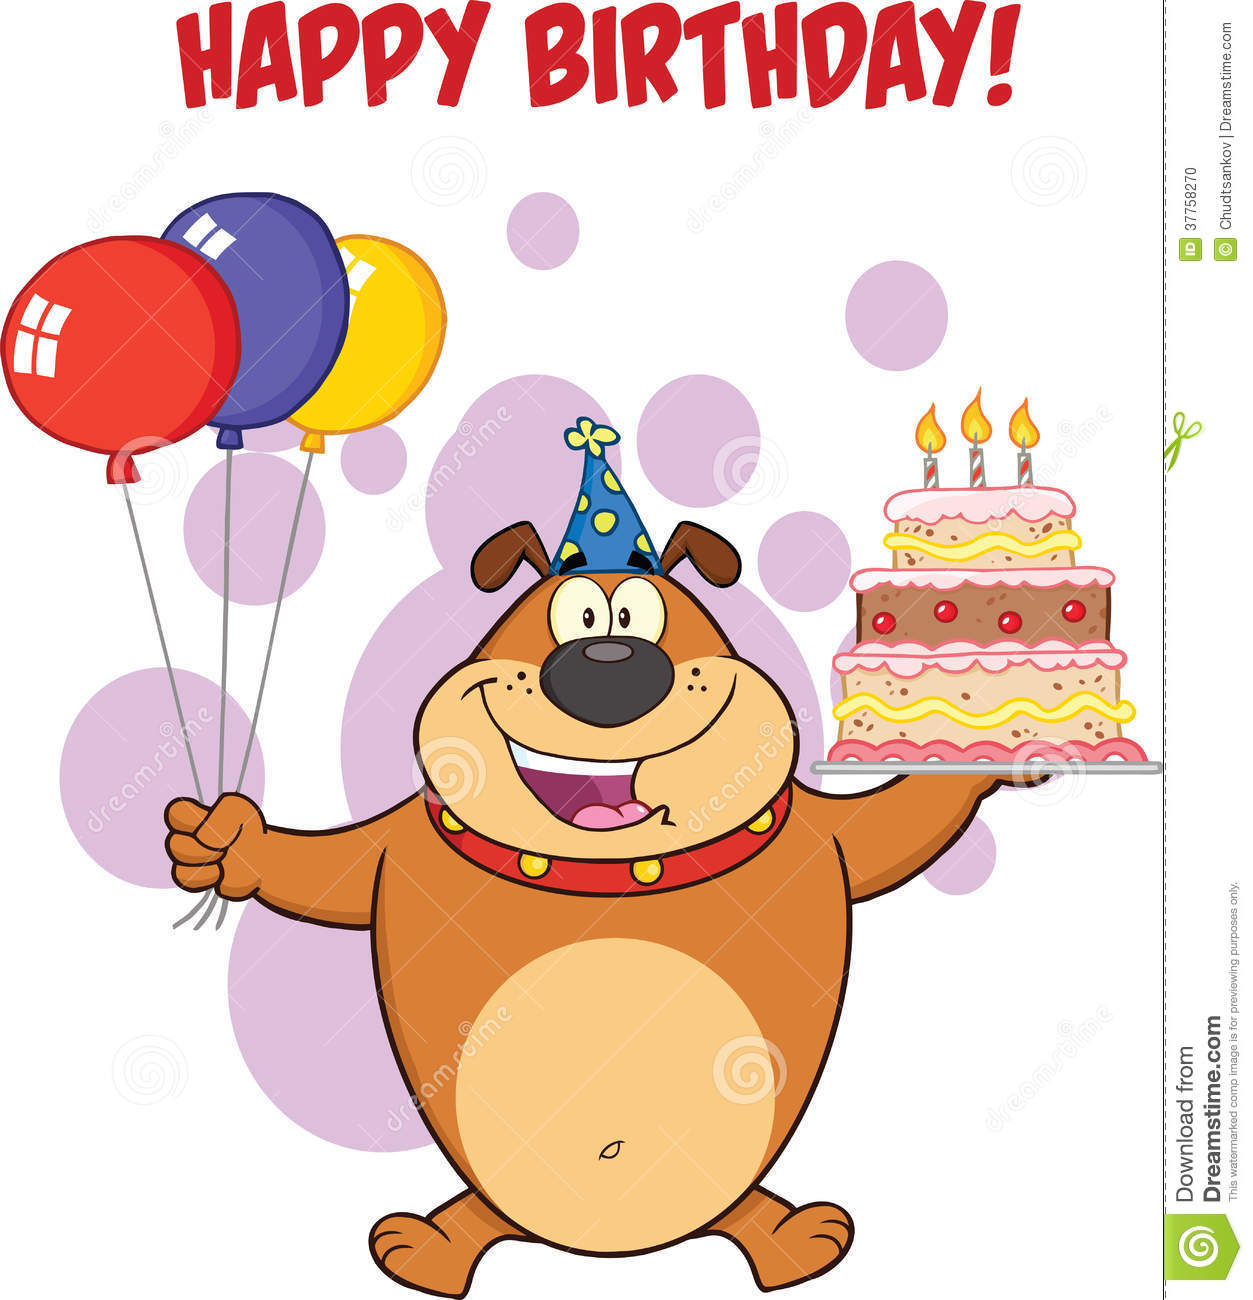 Happy Birthday Greeting With Brown Bulldog Holding Up A